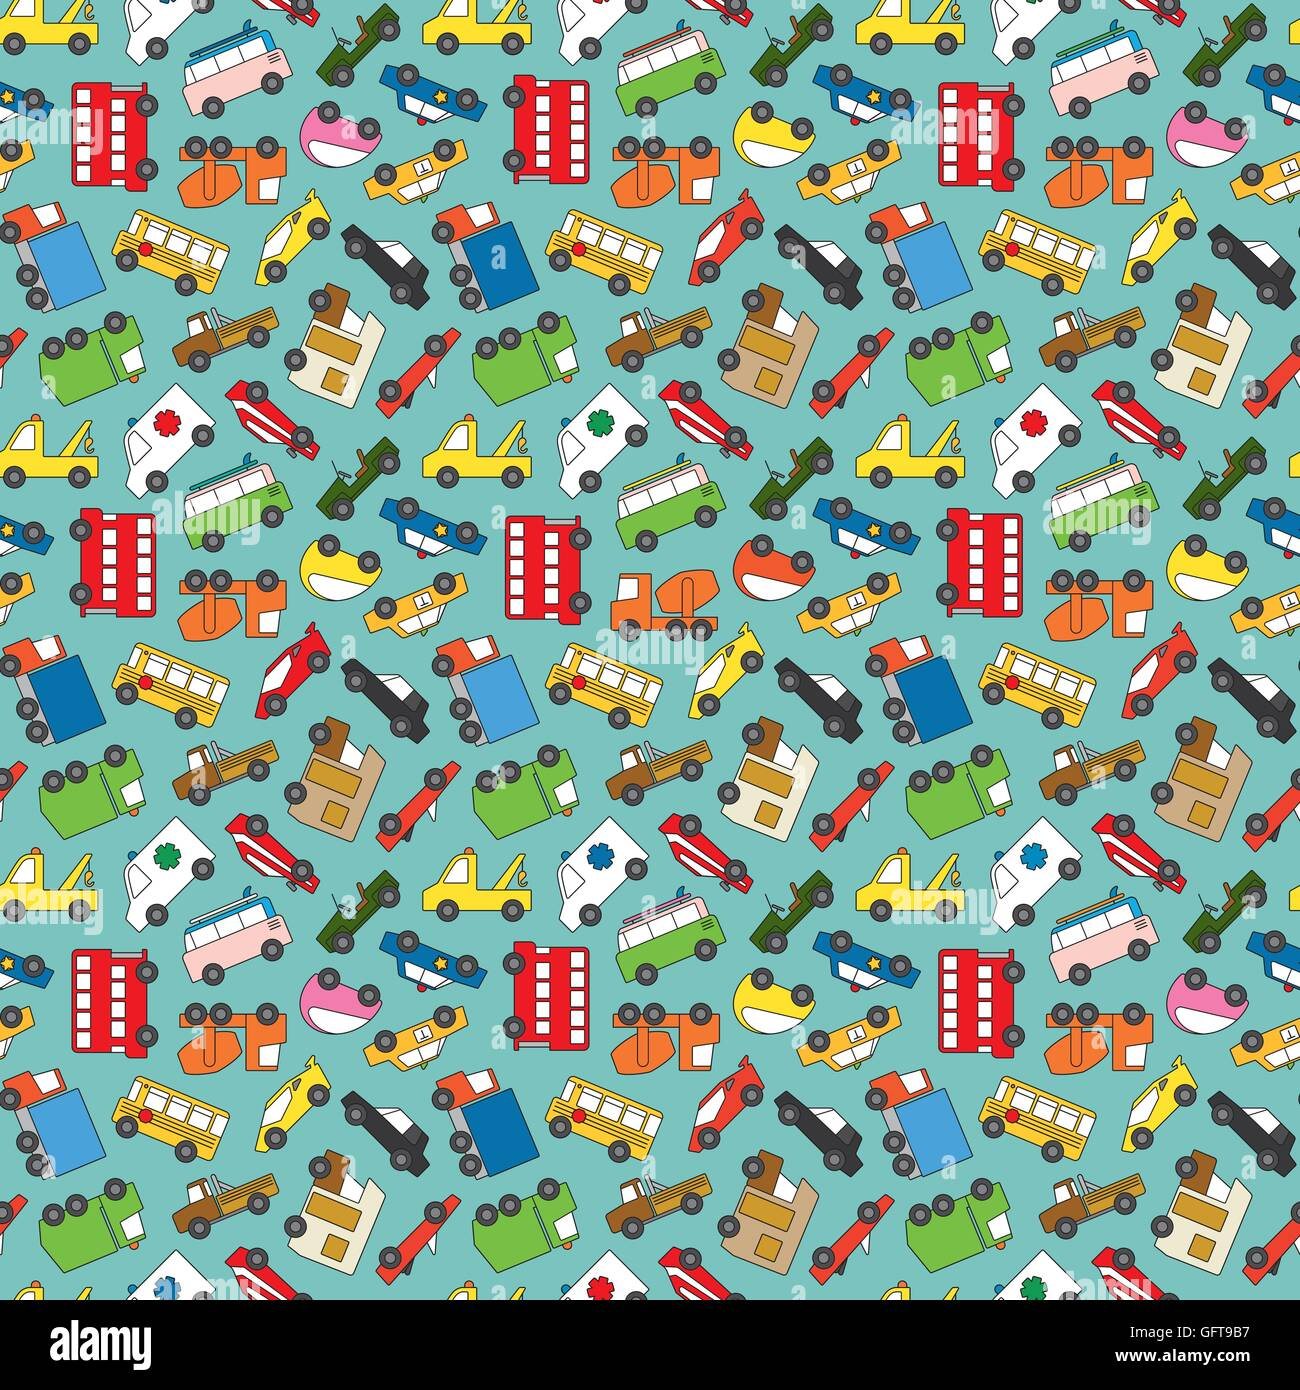 Seamless pattern from various cars, trucks and vans vector - Stock Image